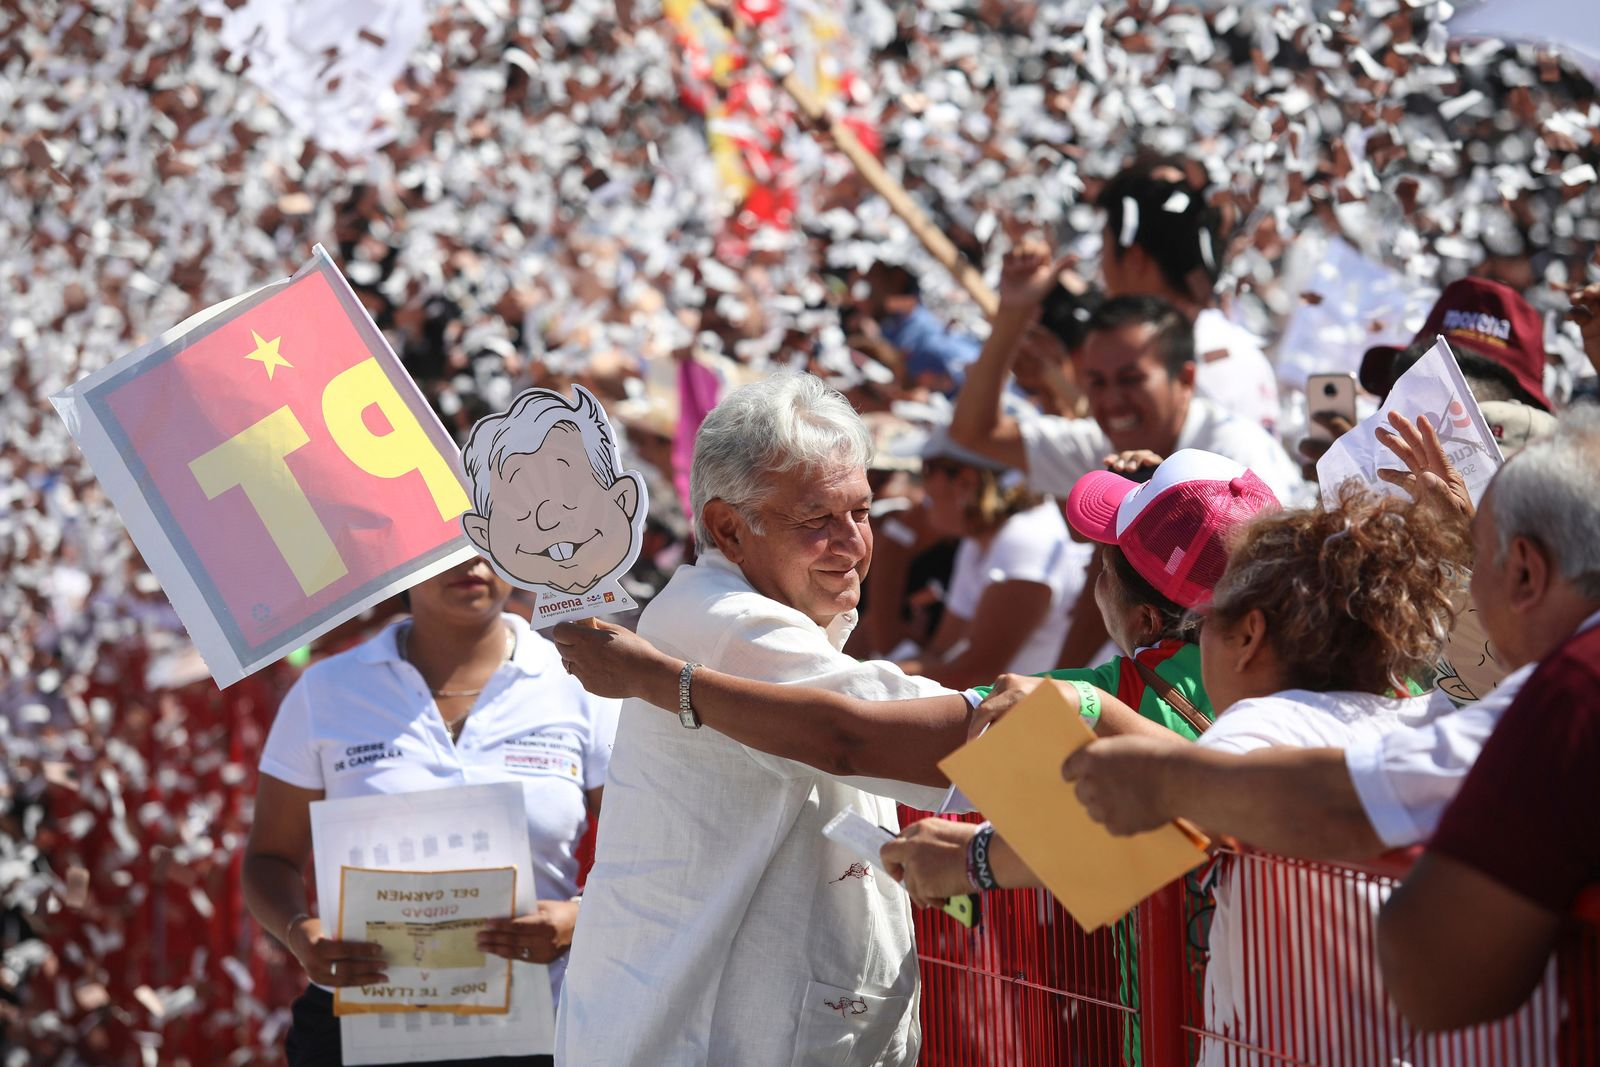 Mexico's presidential candidate Andres Manuel Lopez Obrador of the MORENA party arrives to a campaign rally in Veracruz, Mexico, Saturday, June